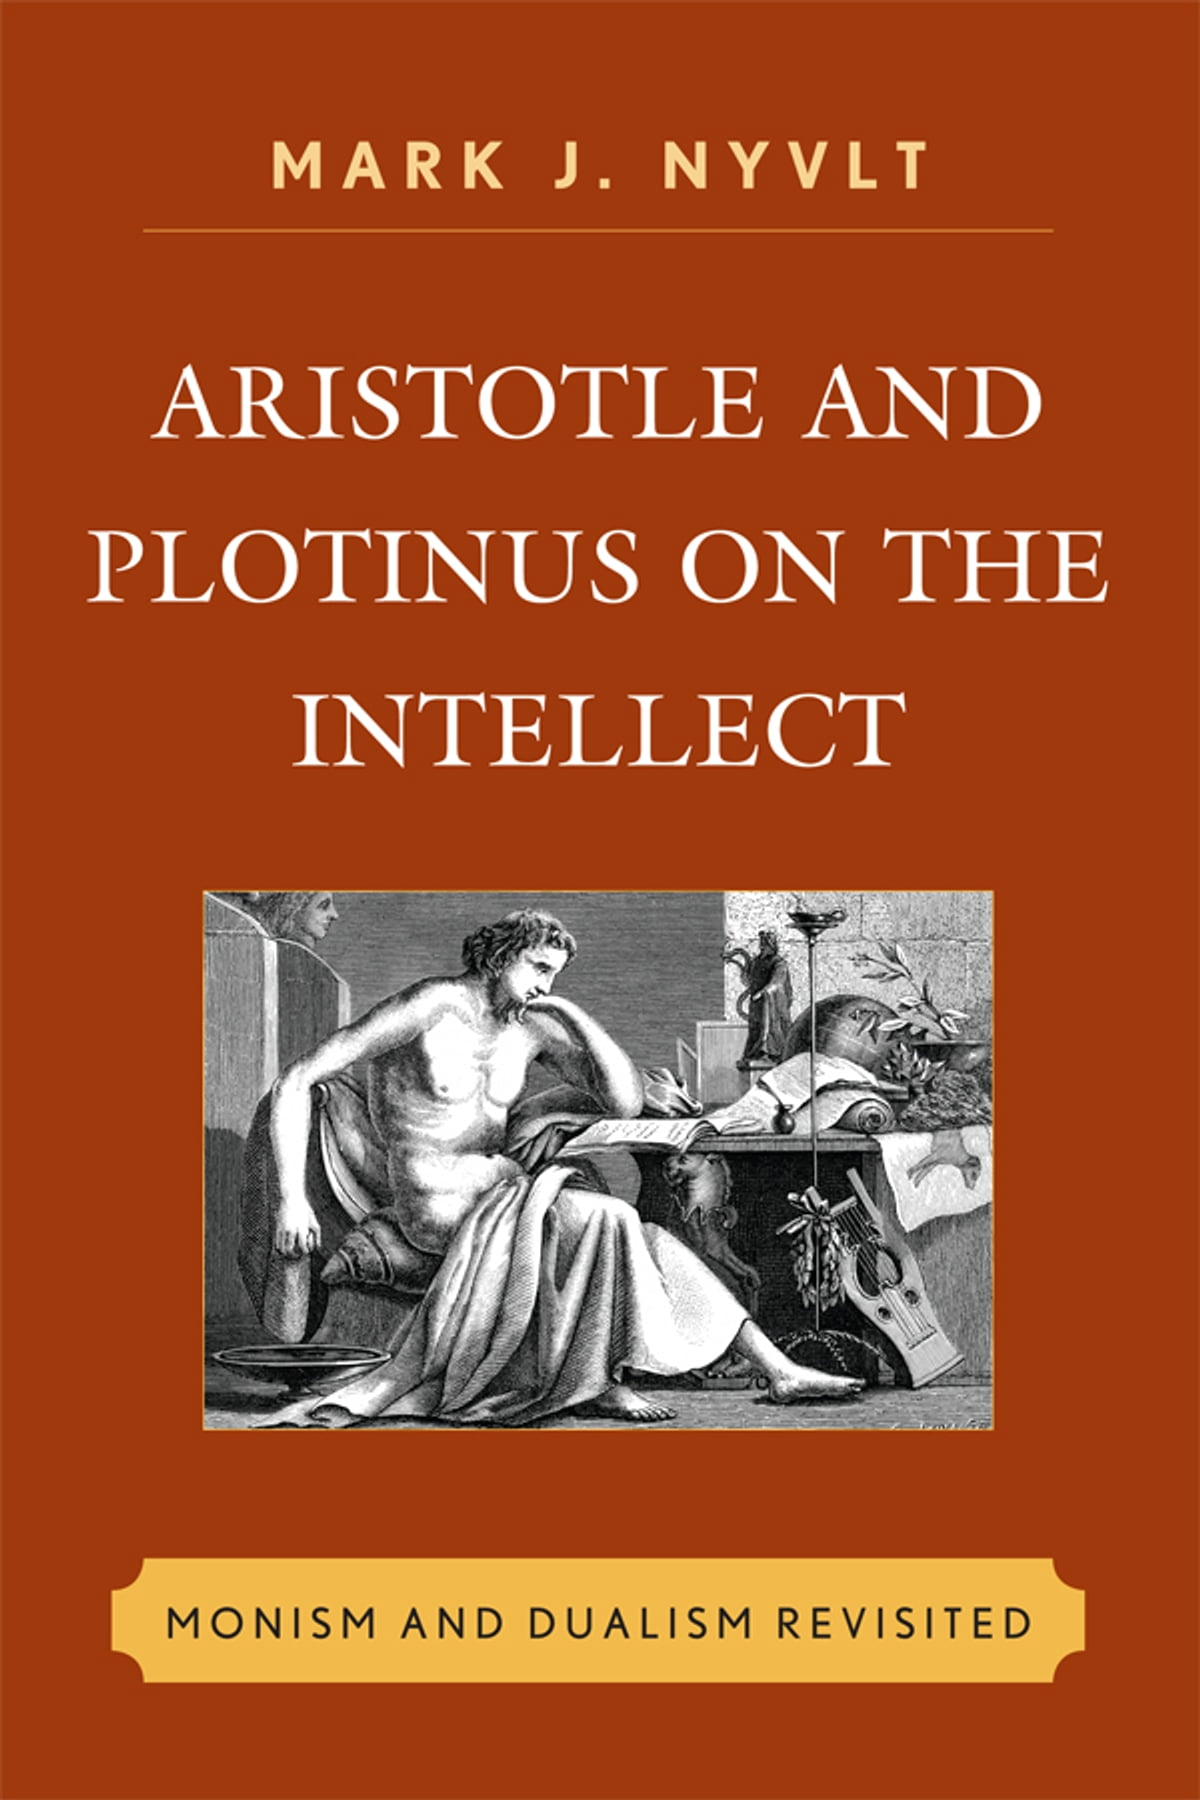 """aristotles theory on intellect Aristotle and aquinas on the possible and agent intellect in aristotle's on the soul book iii, the stagirite argues that there is a """"passive"""" or """"possible"""" intellect, and an """"active"""" or """"agent"""" intellect."""